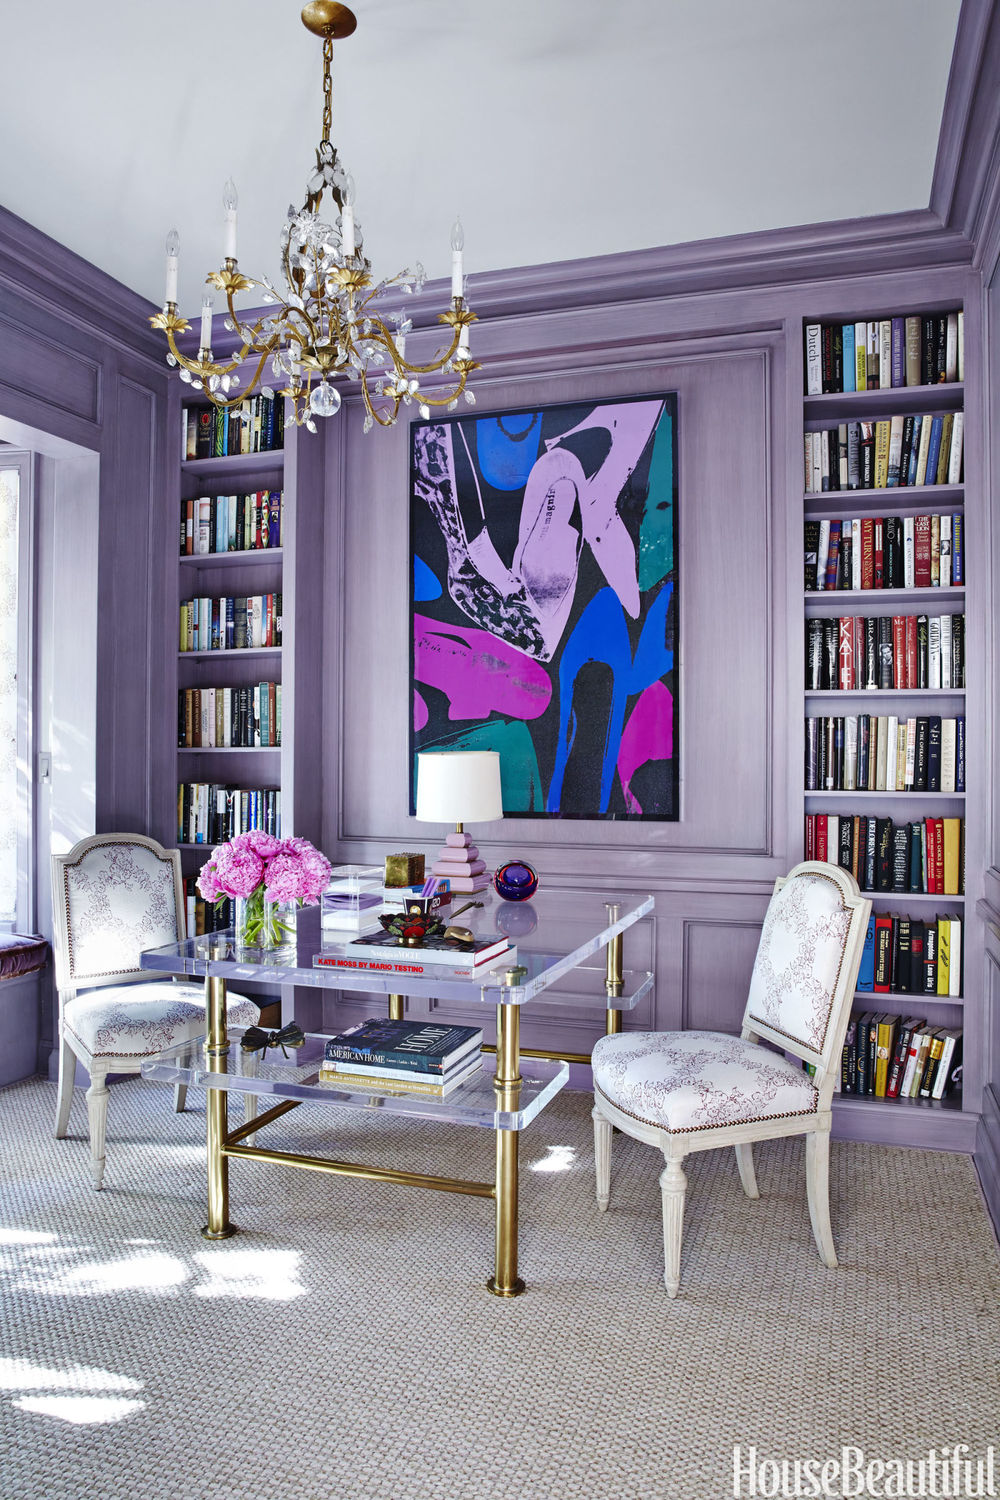 gallery-1440172022-purple-room-with-painting.jpg